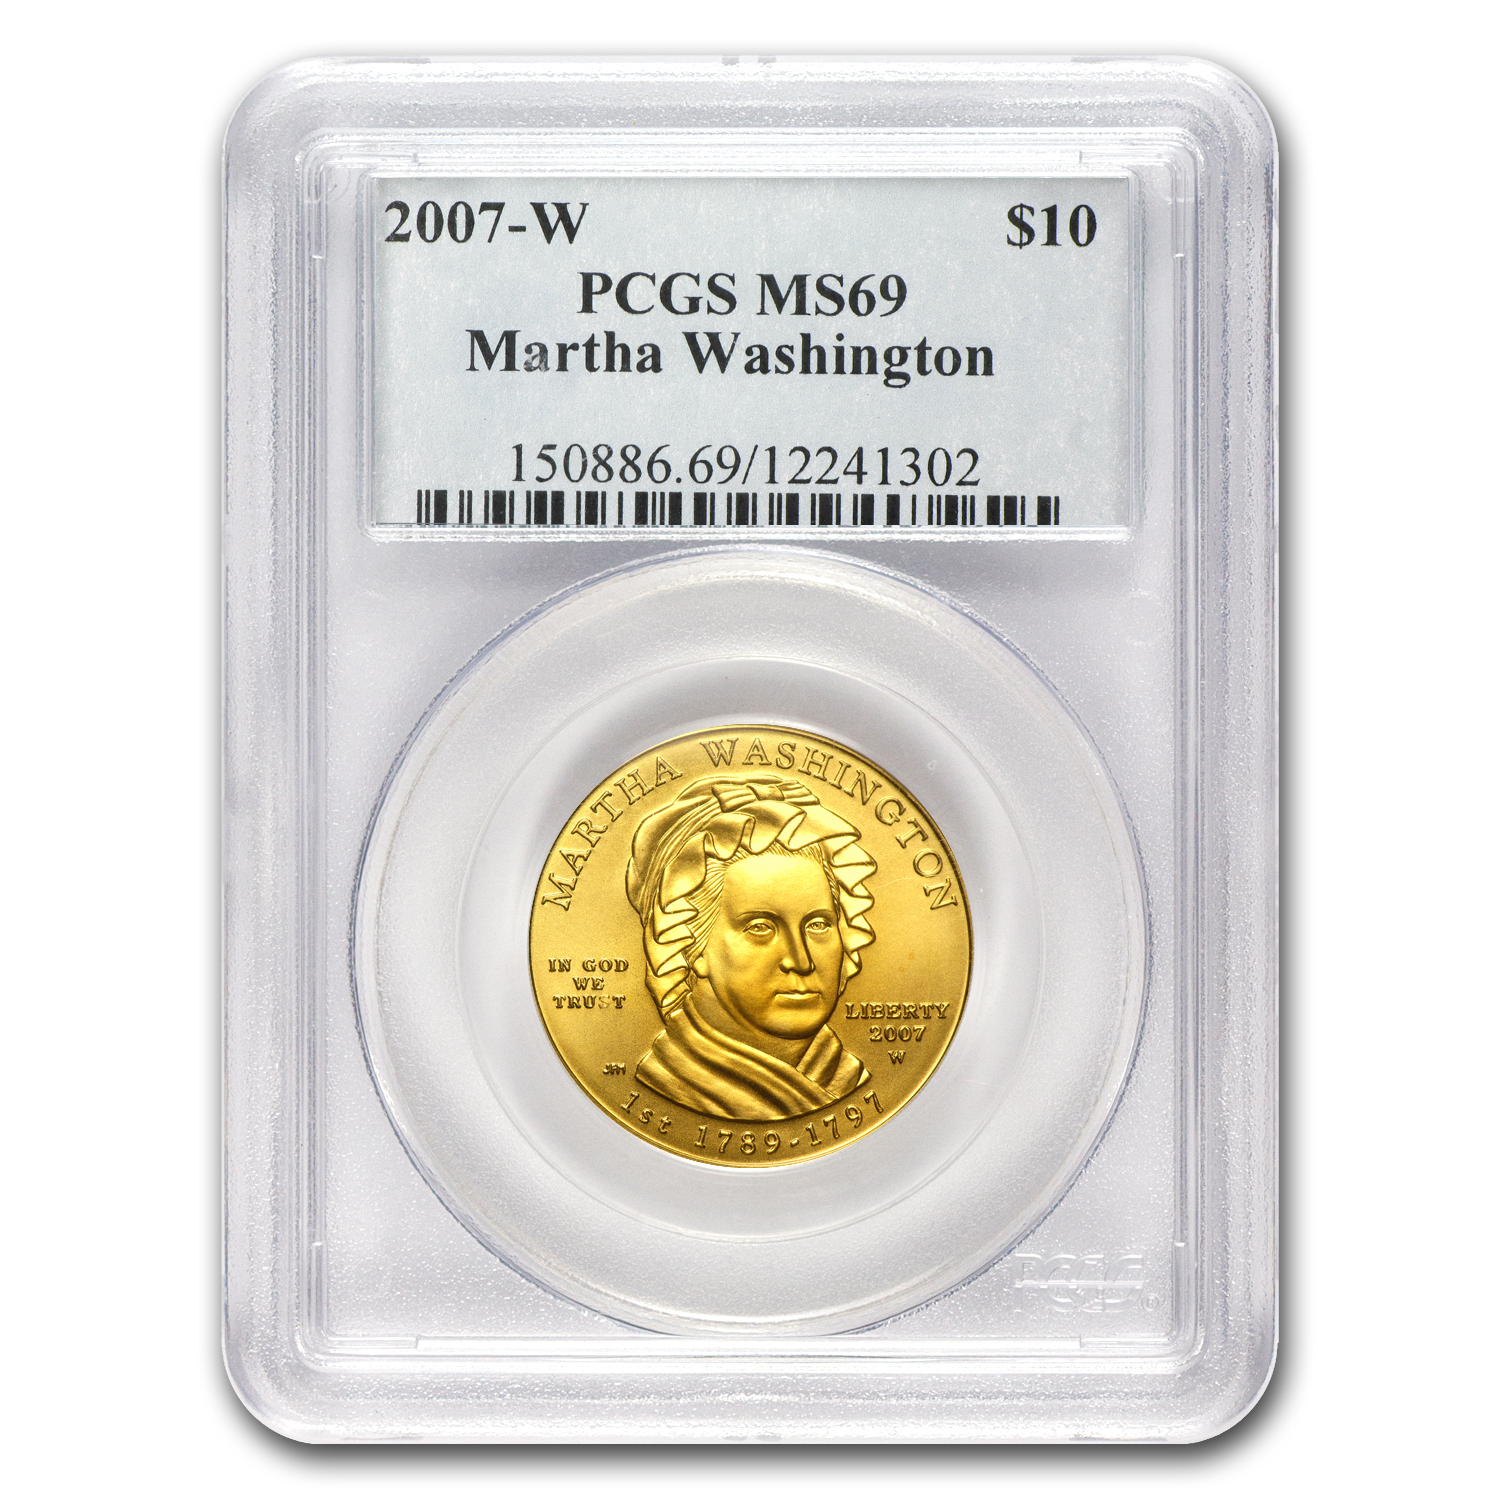 2007-W 1/2 oz Gold Martha Washington MS-69 PCGS